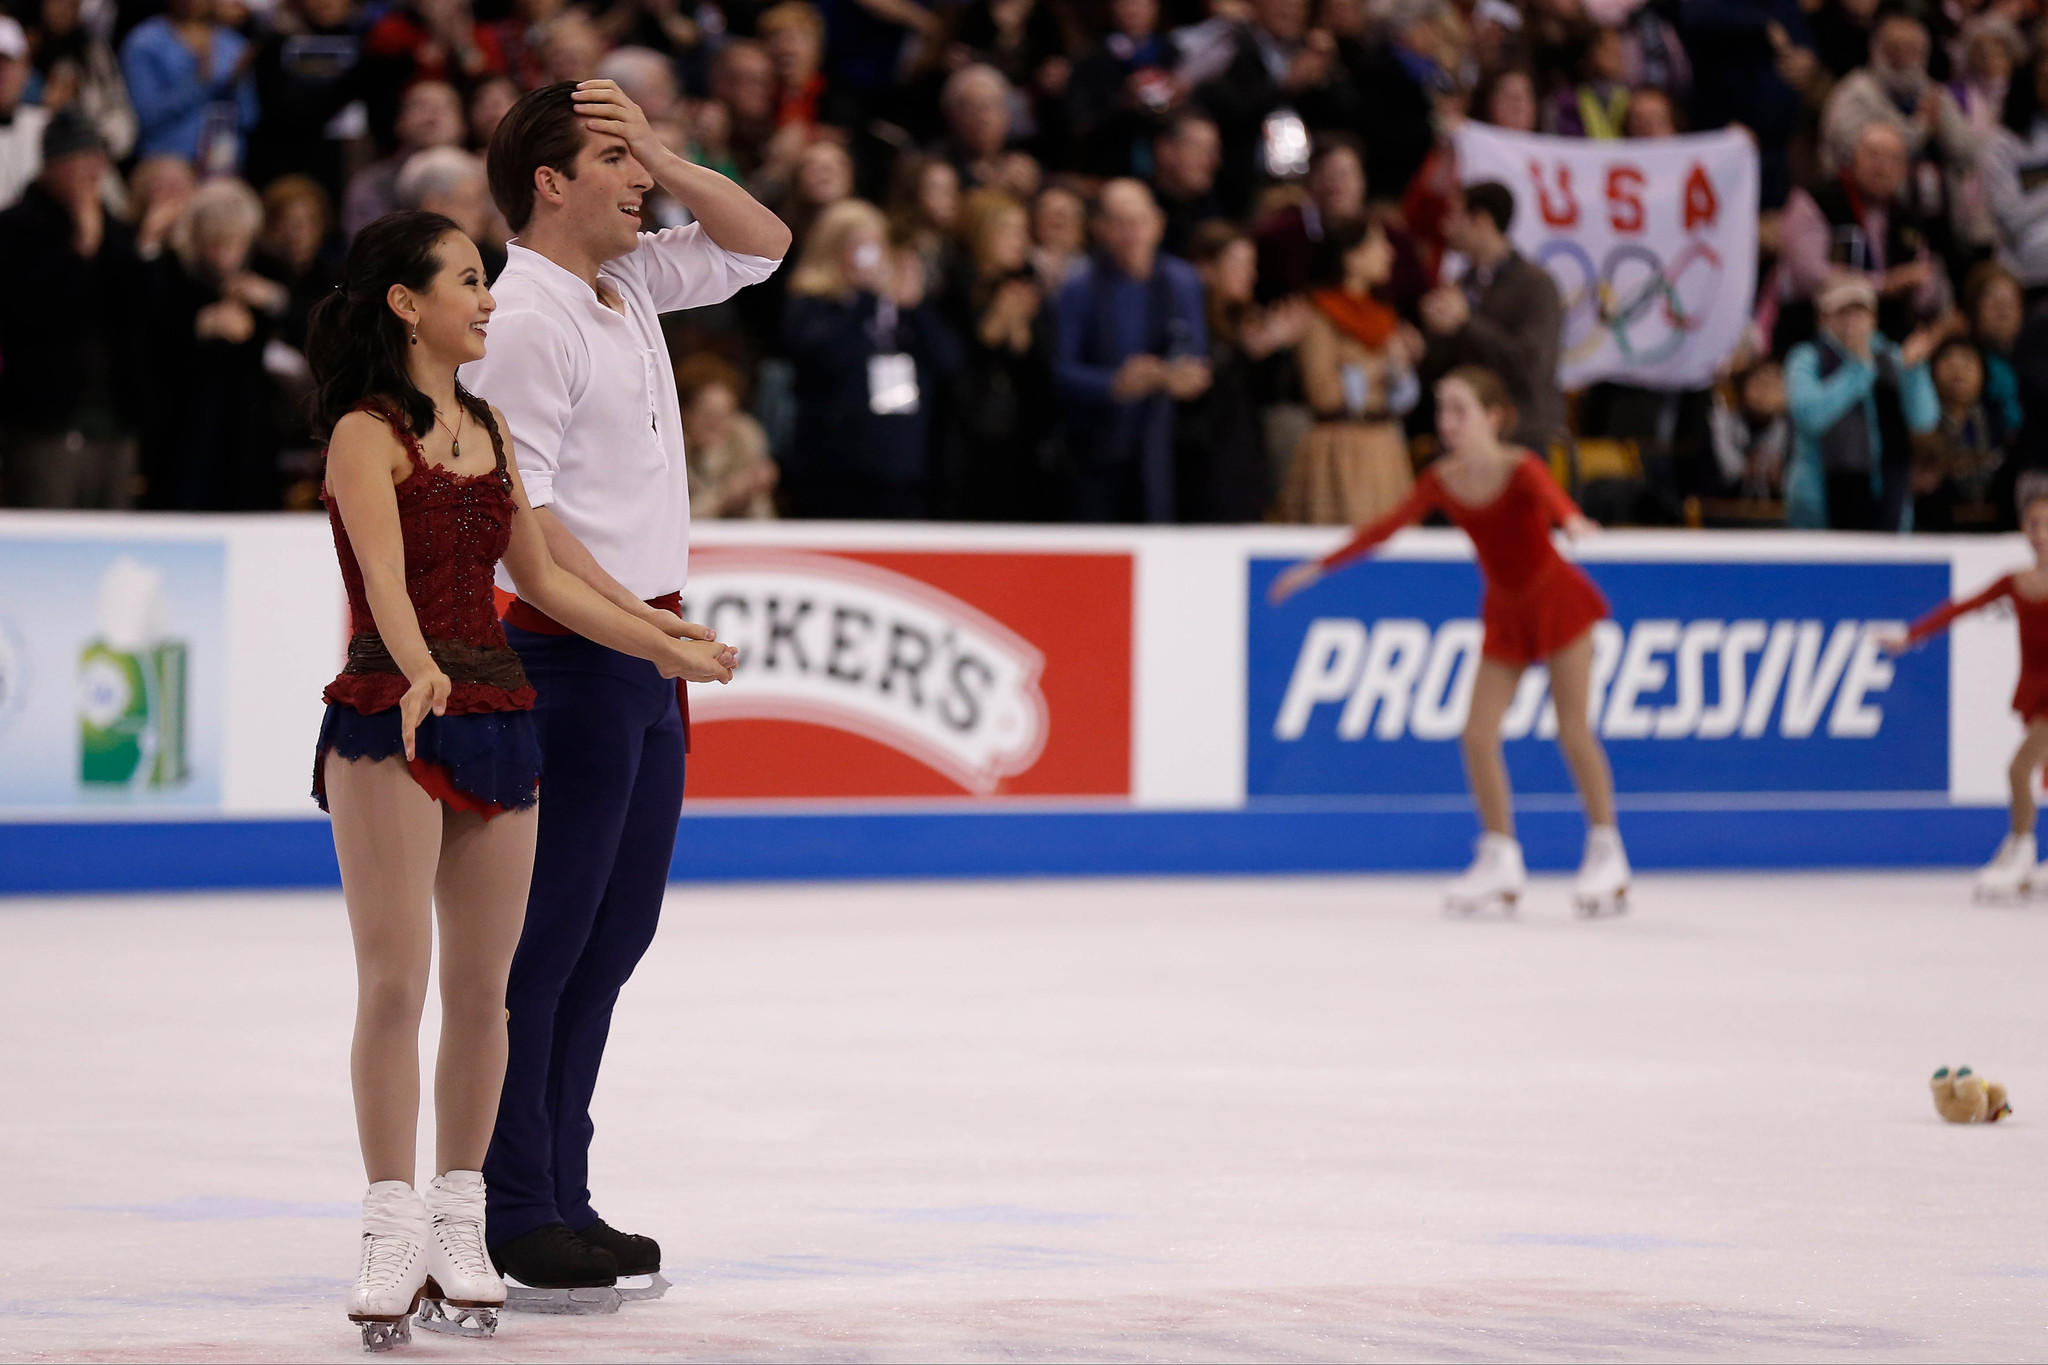 Nathan Bartholomay reacts with stunned delight after he and Felicia Zhang finished second in pairs at U.S. Figure Skating Championships.